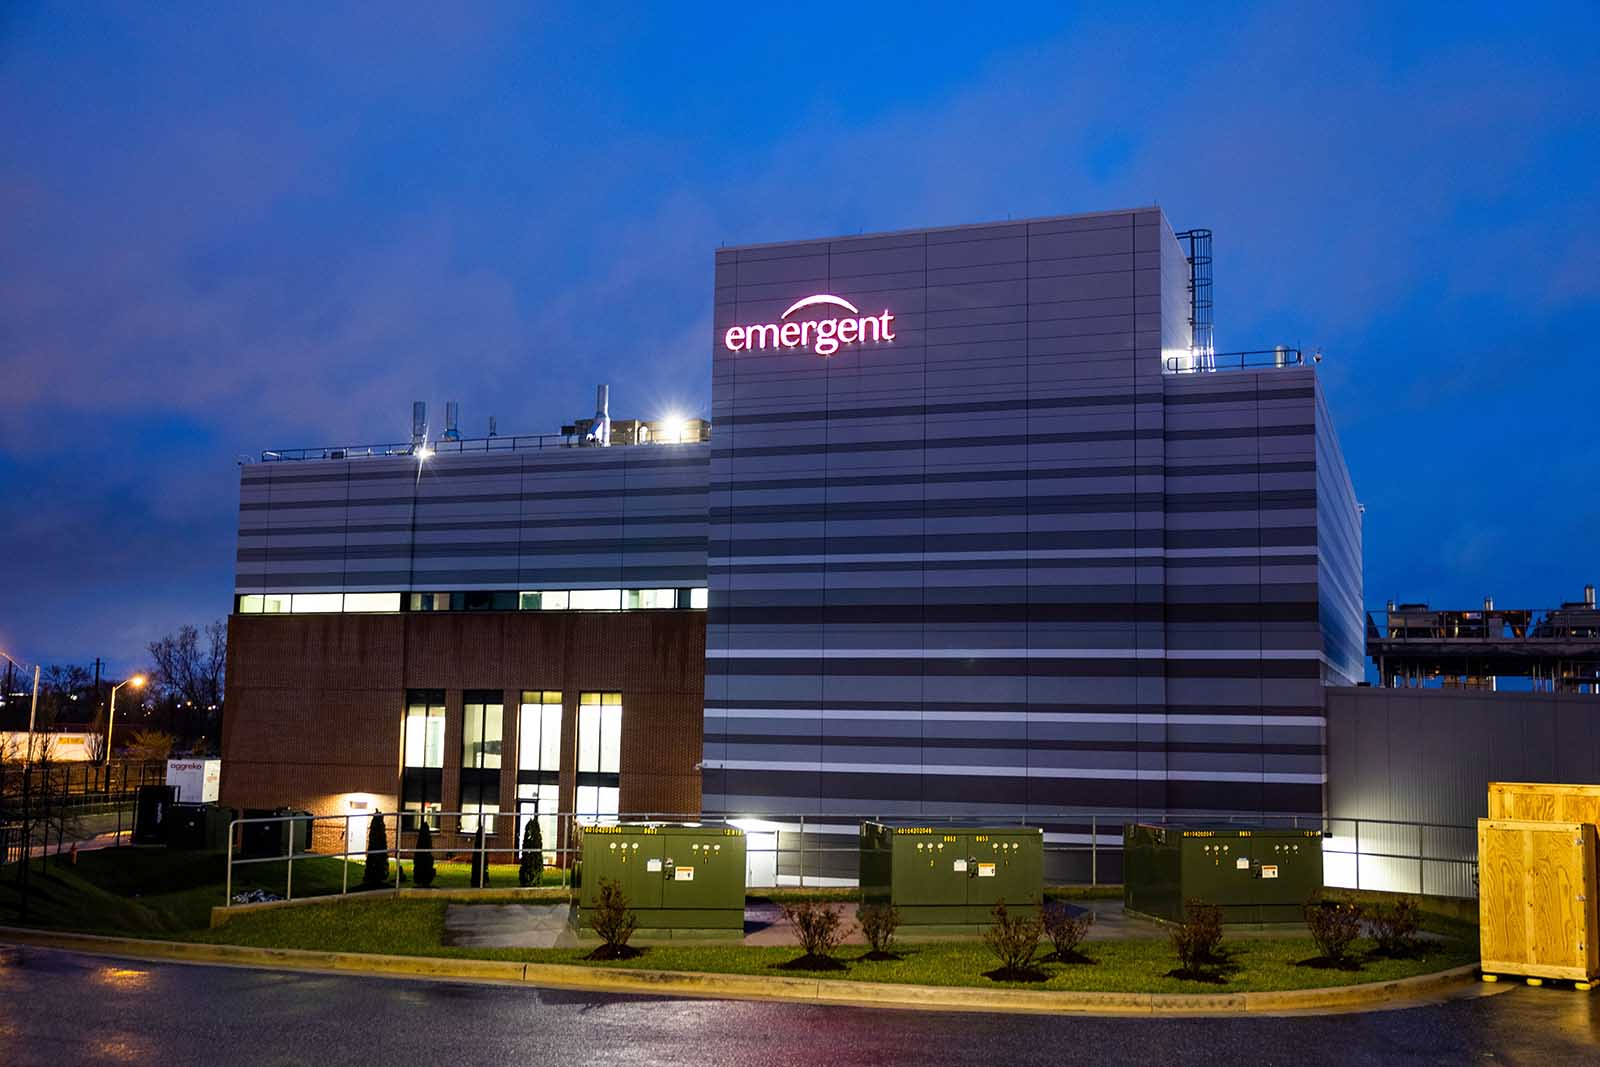 The biopharmaceutical company Emergent BioSolutions is pictured in Baltimore, Maryland, on April 1.